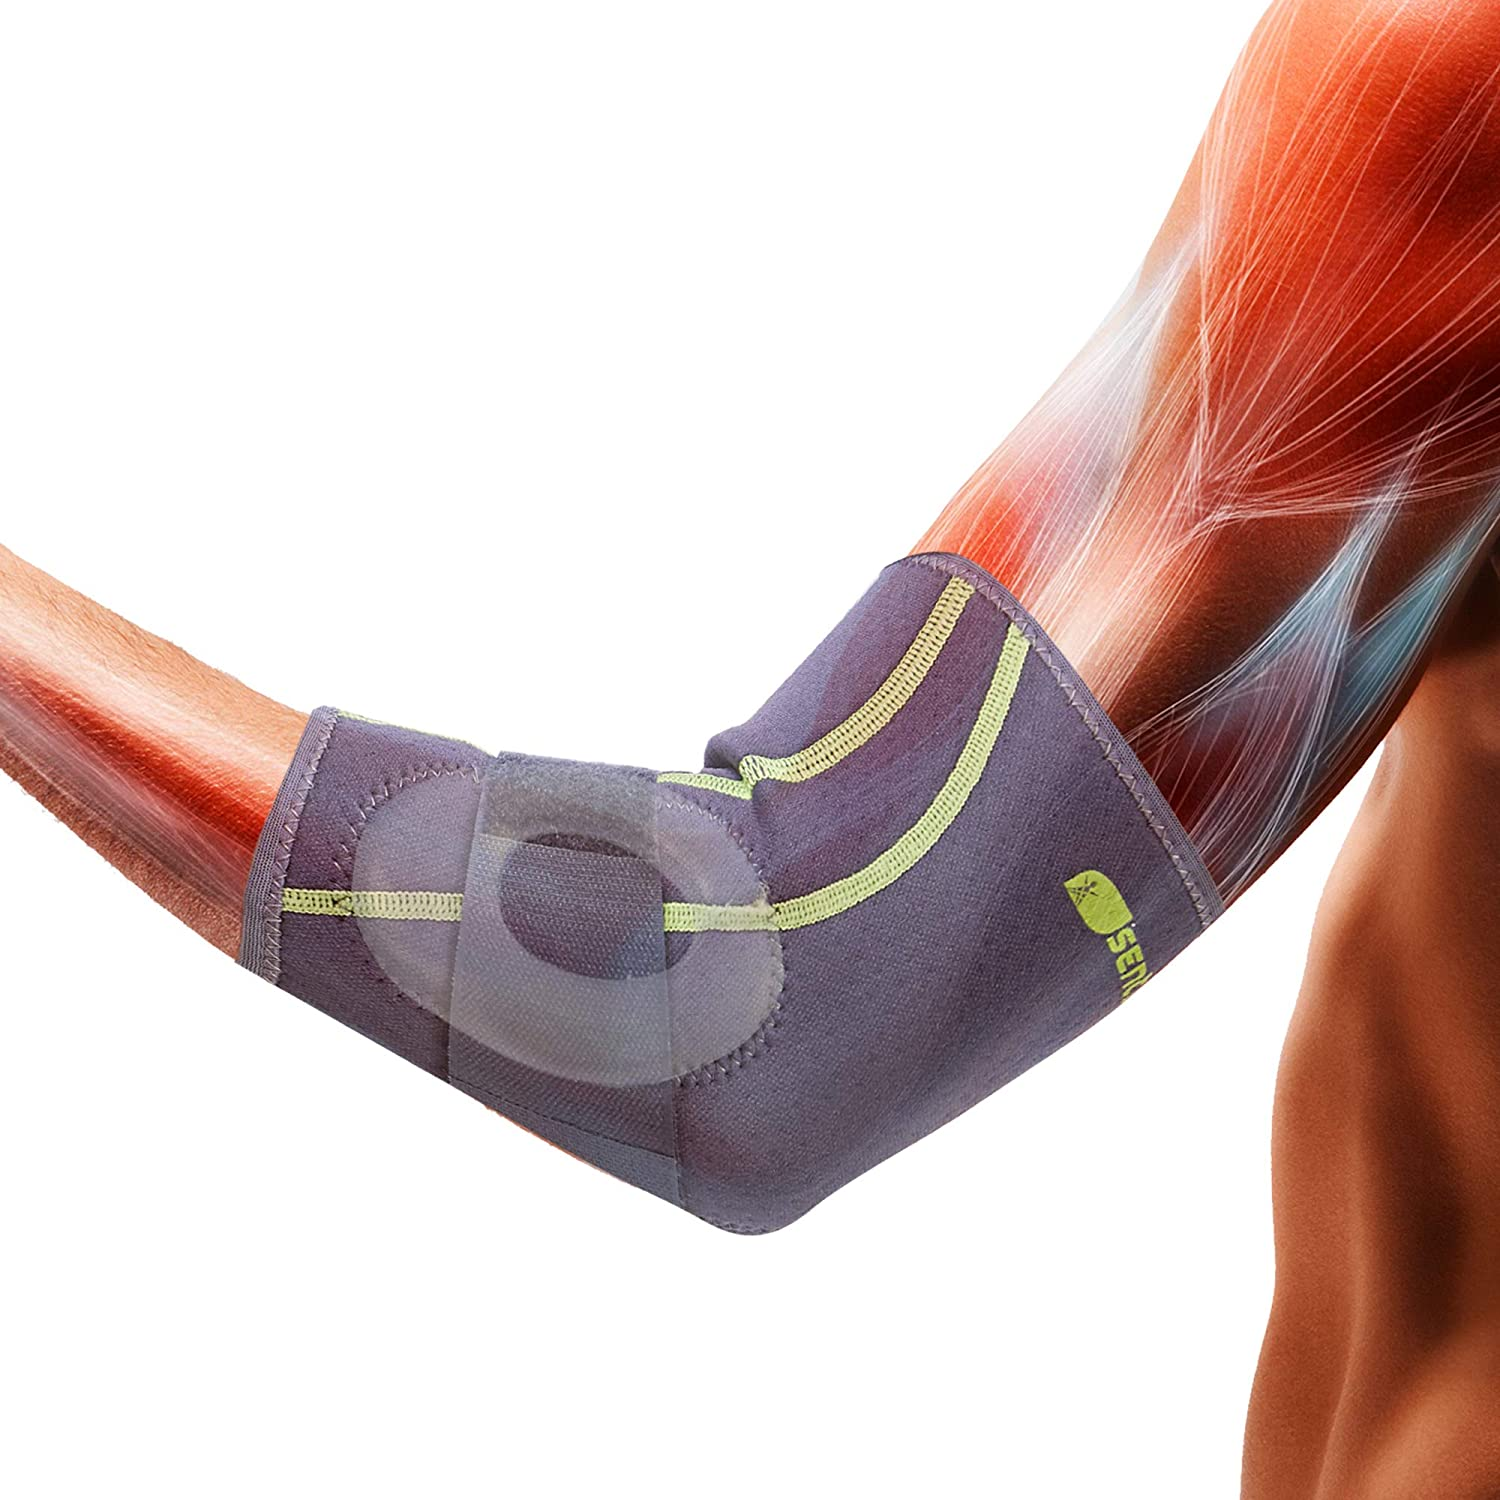 SENTEQ Tennis Golf Elbow Brace Sleeve with Strap & Inner GEL Pads - Best for joint pain relief, prevent injuries, improve blood circulation. Medical Grade Made in Taiwan. (SQ2-N007S): Industrial & Scientific